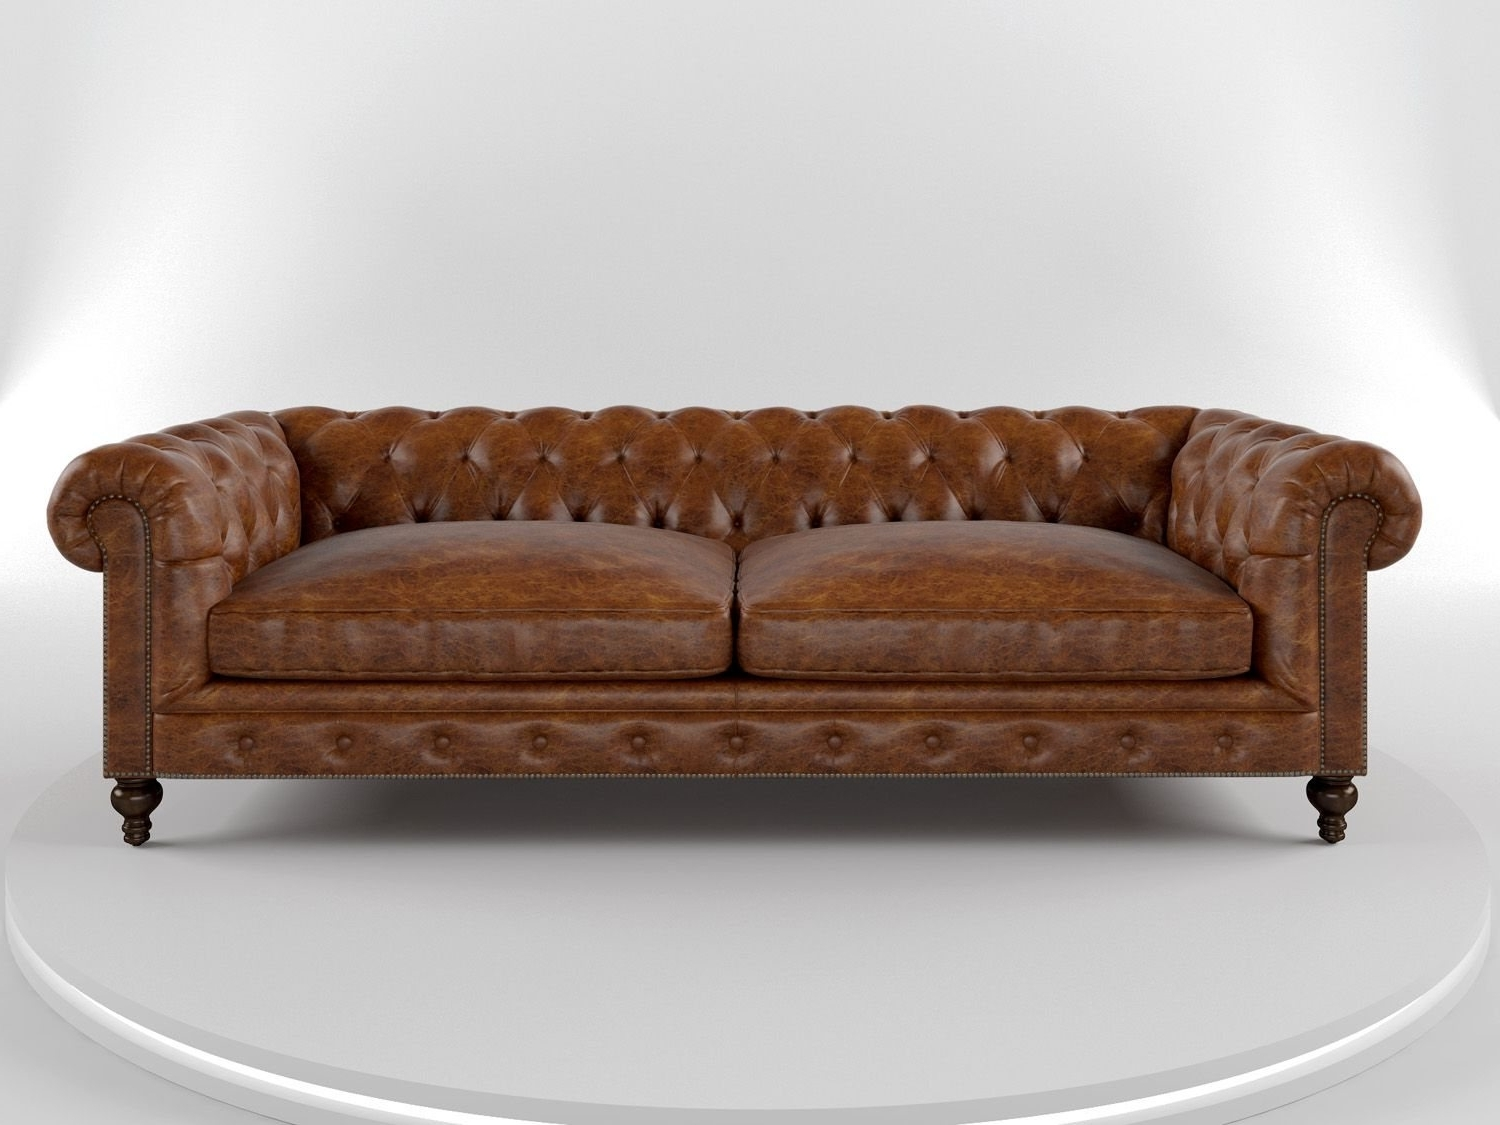 Cococo Custom Chesterfield Leather Tufted Sofas – Made In Usa For 2017 Tufted Leather Chesterfield Sofas (View 5 of 15)